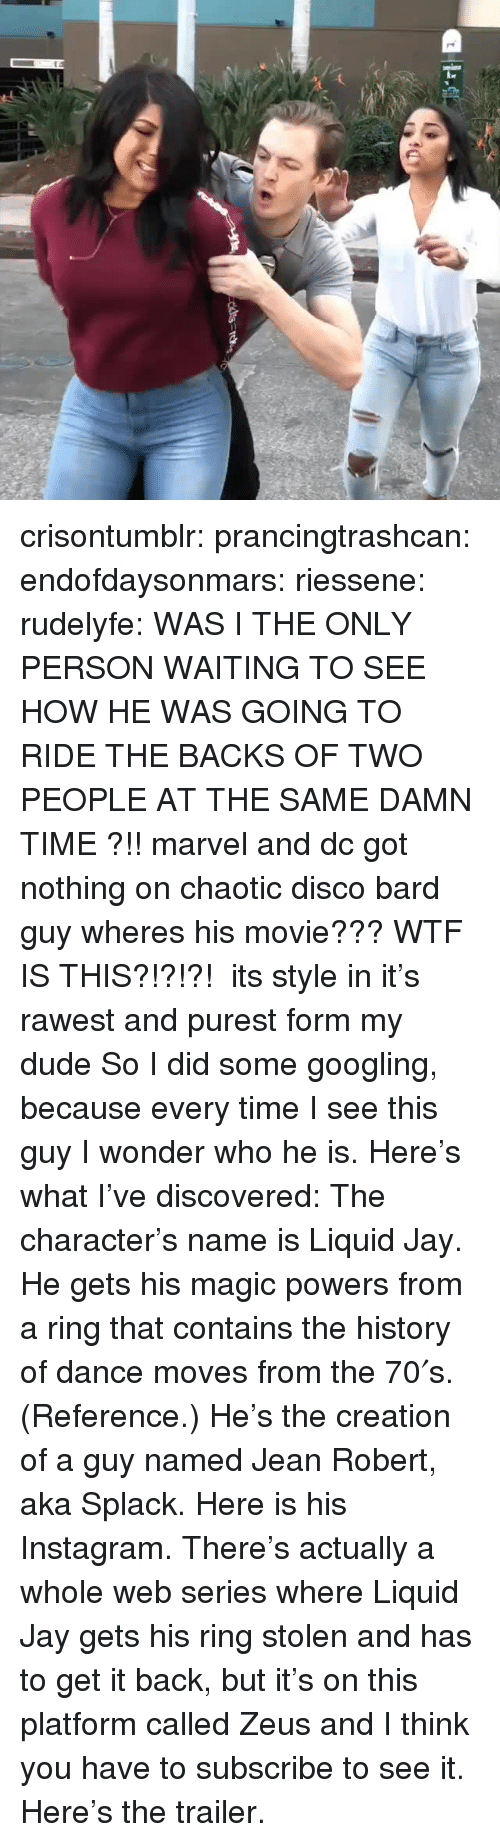 Dude, Instagram, and Jay: crisontumblr: prancingtrashcan:  endofdaysonmars:  riessene:  rudelyfe: WAS I THE ONLY PERSON WAITING TO SEE HOW HE WAS GOING TO RIDE THE BACKS OF TWO PEOPLE AT THE SAME DAMN TIME ?!! marvel and dc got nothing on chaotic disco bard guy wheres his movie???  WTF IS THIS?!?!?!  its style in it's rawest and purest form my dude  So I did some googling, because every time I see this guy I wonder who he is. Here's what I've discovered: The character's name is Liquid Jay. He gets his magic powers from a ring that contains the history of dance moves from the 70′s. (Reference.) He's the creation of a guy named Jean Robert, aka Splack.Here is his Instagram. There's actually a whole web series where Liquid Jay gets his ring stolen and has to get it back, but it's on this platform called Zeus and I think you have to subscribe to see it. Here's the trailer.